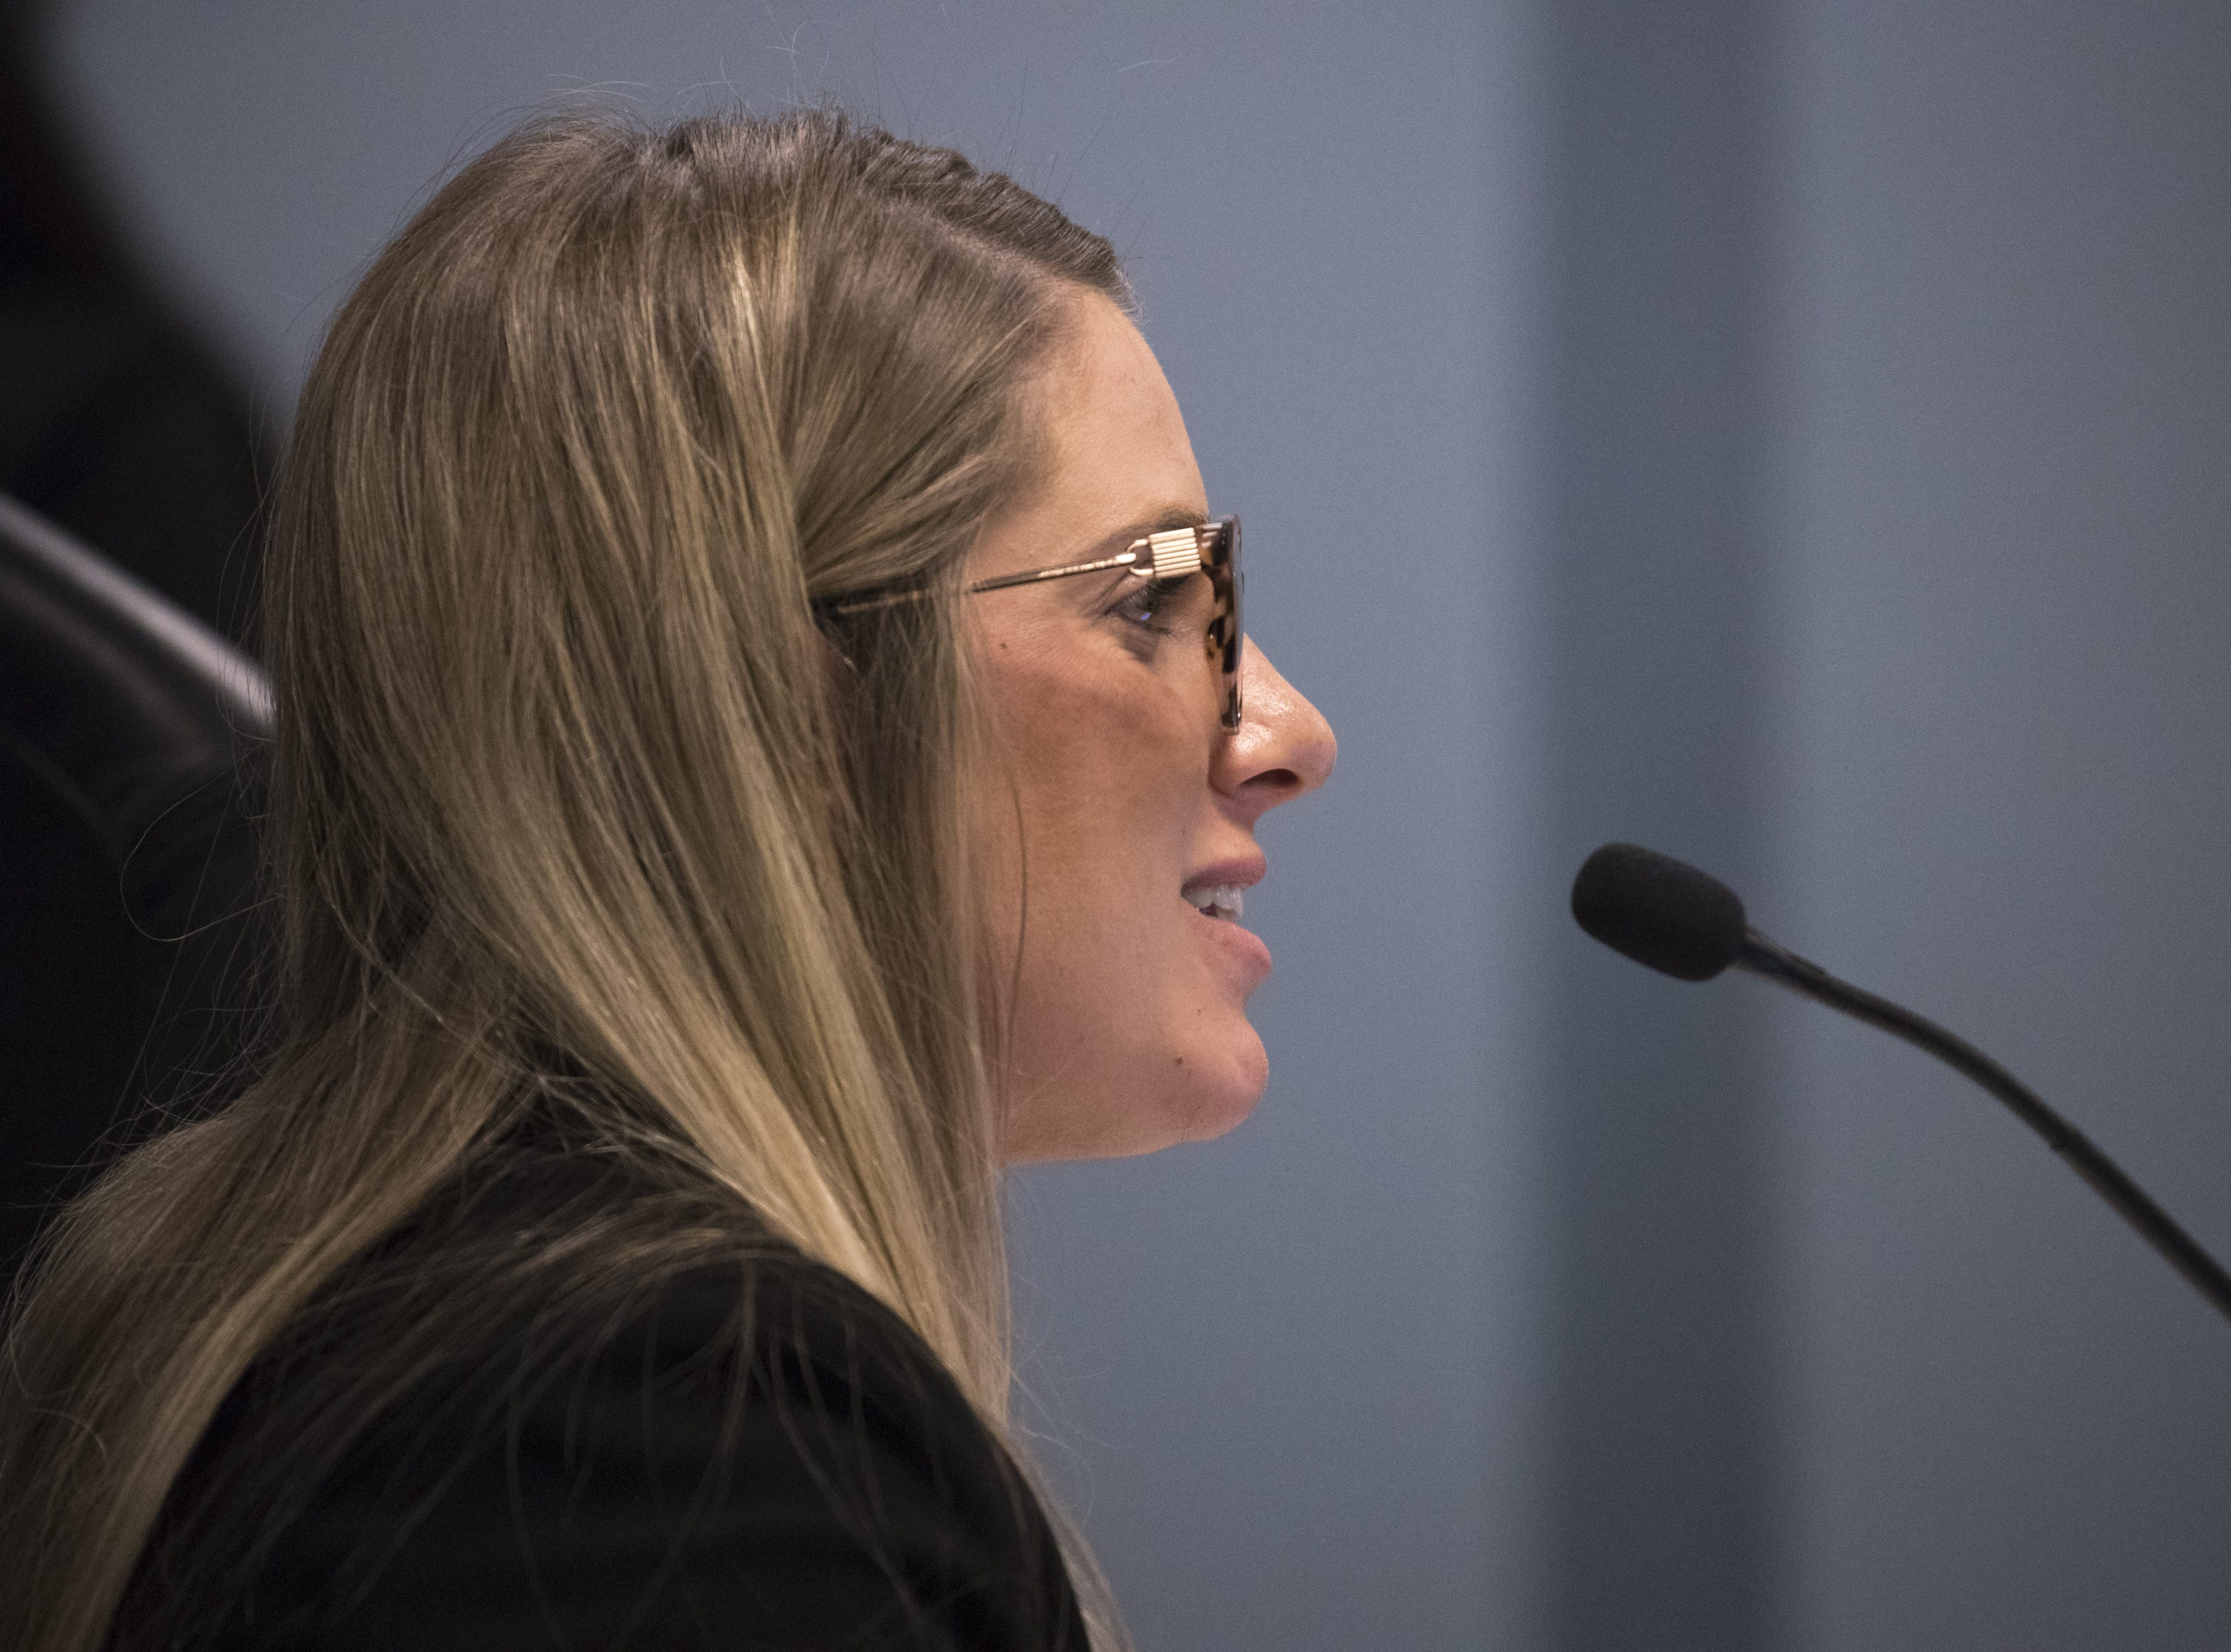 Ashley Berg, executive director, talks during an Arizona State Board for Charter Schools meeting on Sept. 10, 2018, at the Arizona Department of Education in Phoenix.